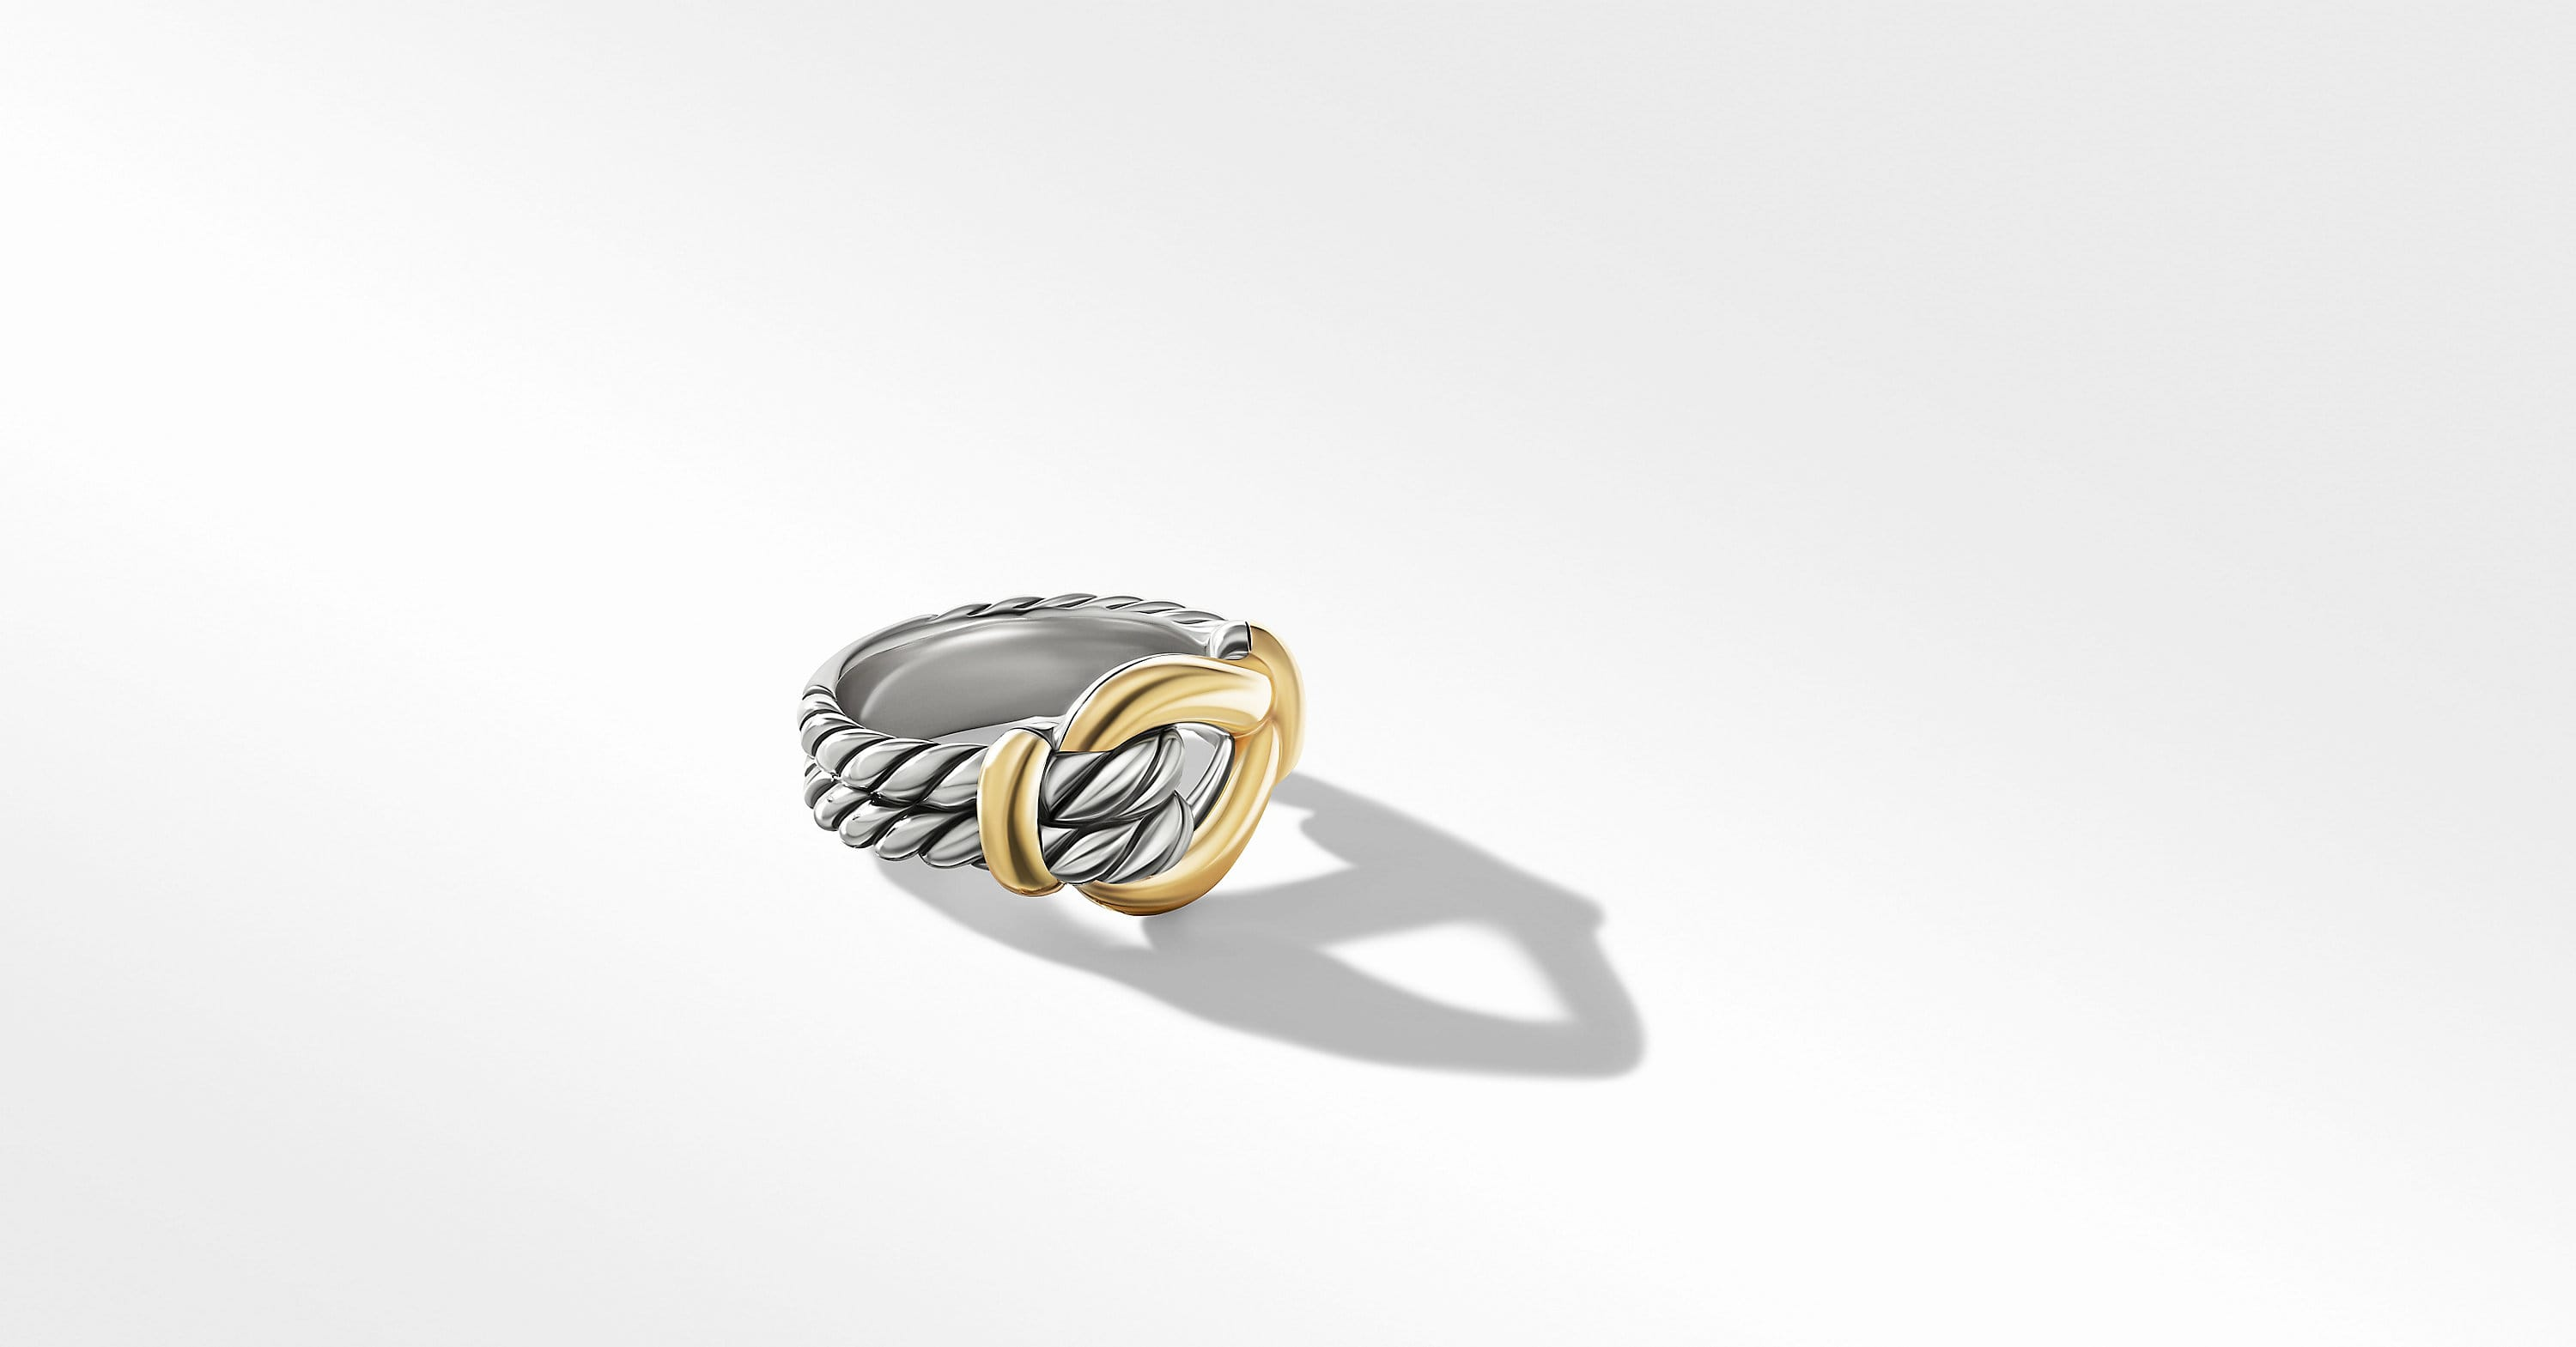 Thoroughbred Loop Ring with 18K Yellow Gold, 13mm